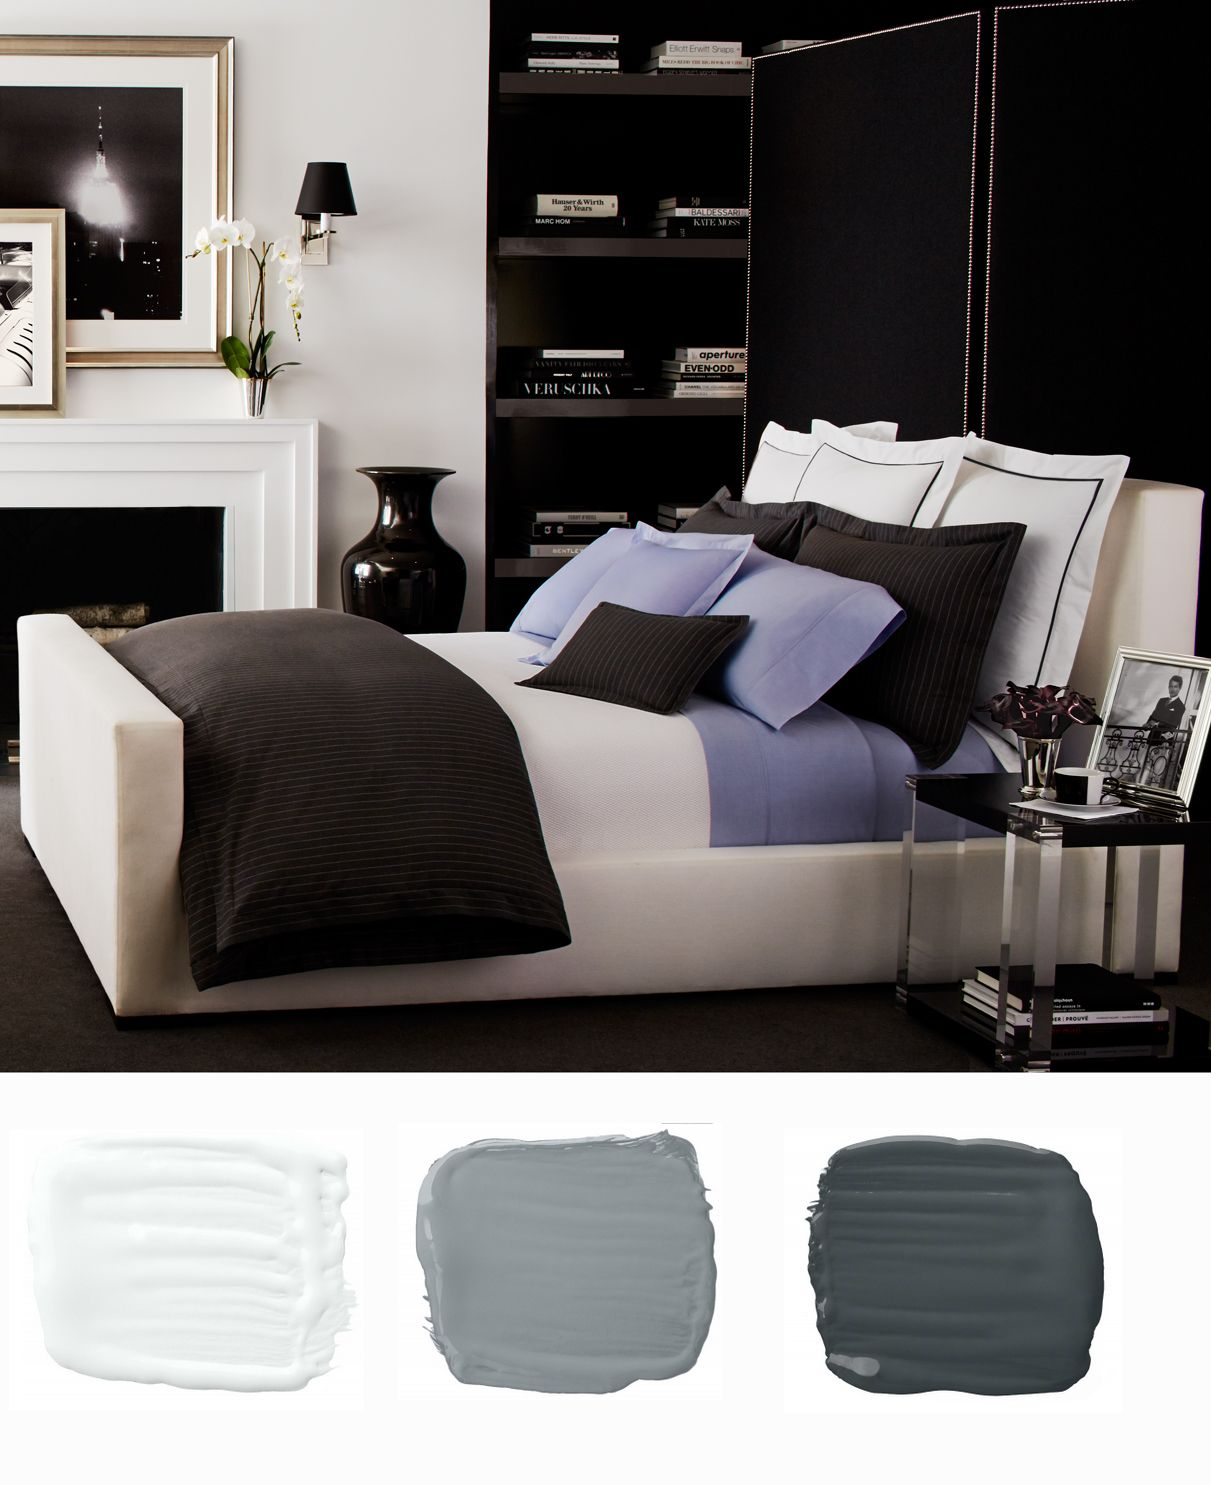 Ralph lauren bedroom - Rl Bedroom Makeover Gray Haberdashery Menswear Inspired Bedding Collection With A Complementary Palette From